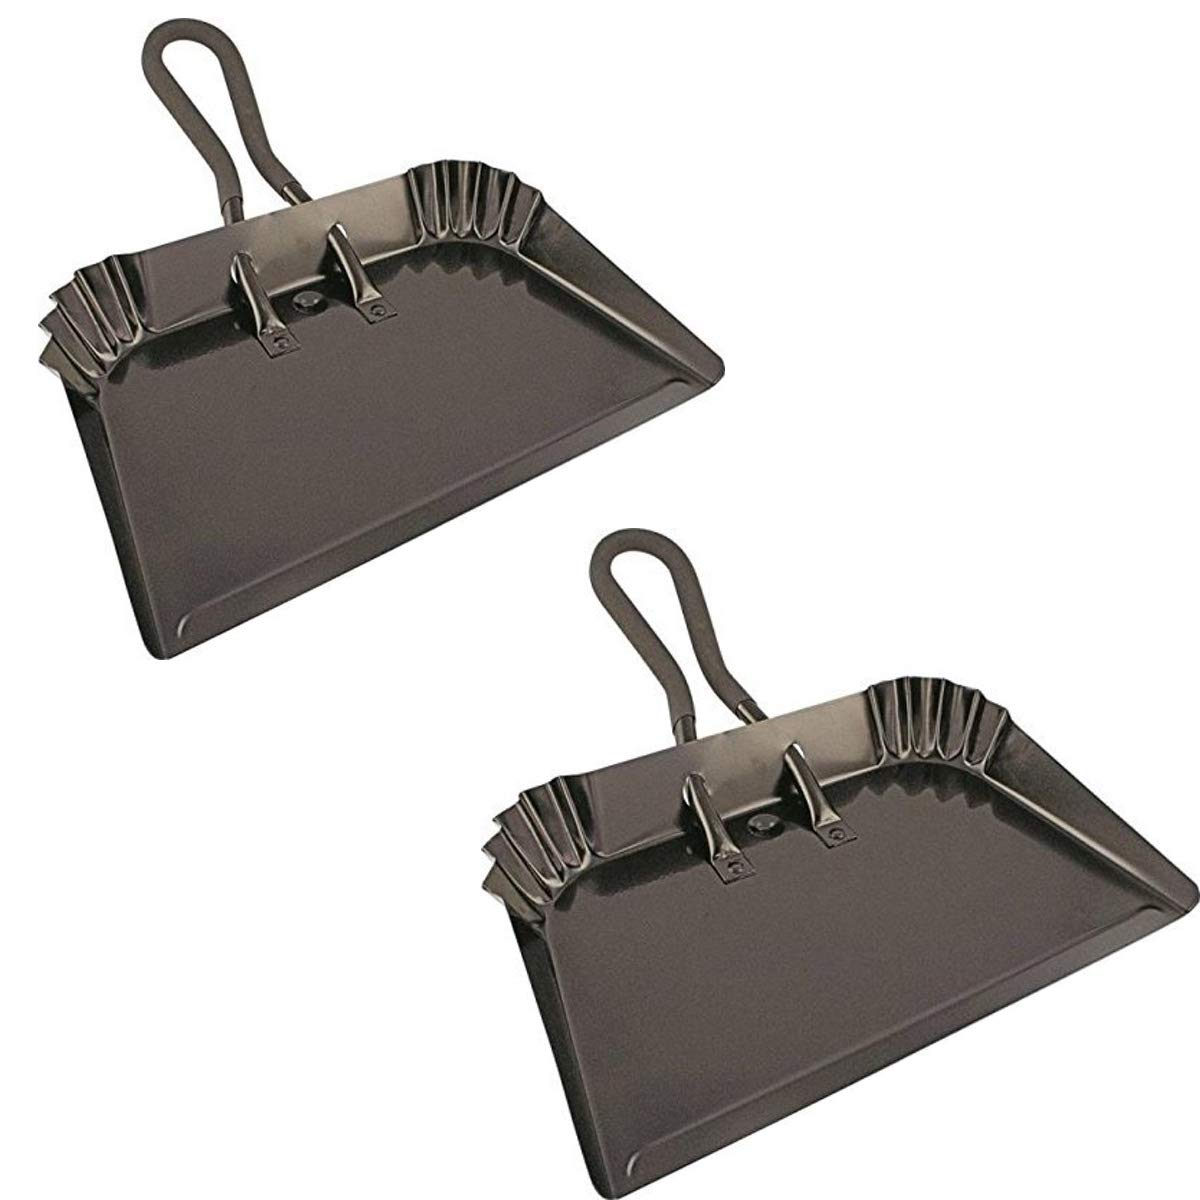 """Edward Tools Extra Large Industrial Metal Dust Pan 17"""" - Heavy Duty Powder Coated Steel does not chip or bend - Great for large cleanups - Rubber Grip Loop handle for comfort/hanging (2)"""